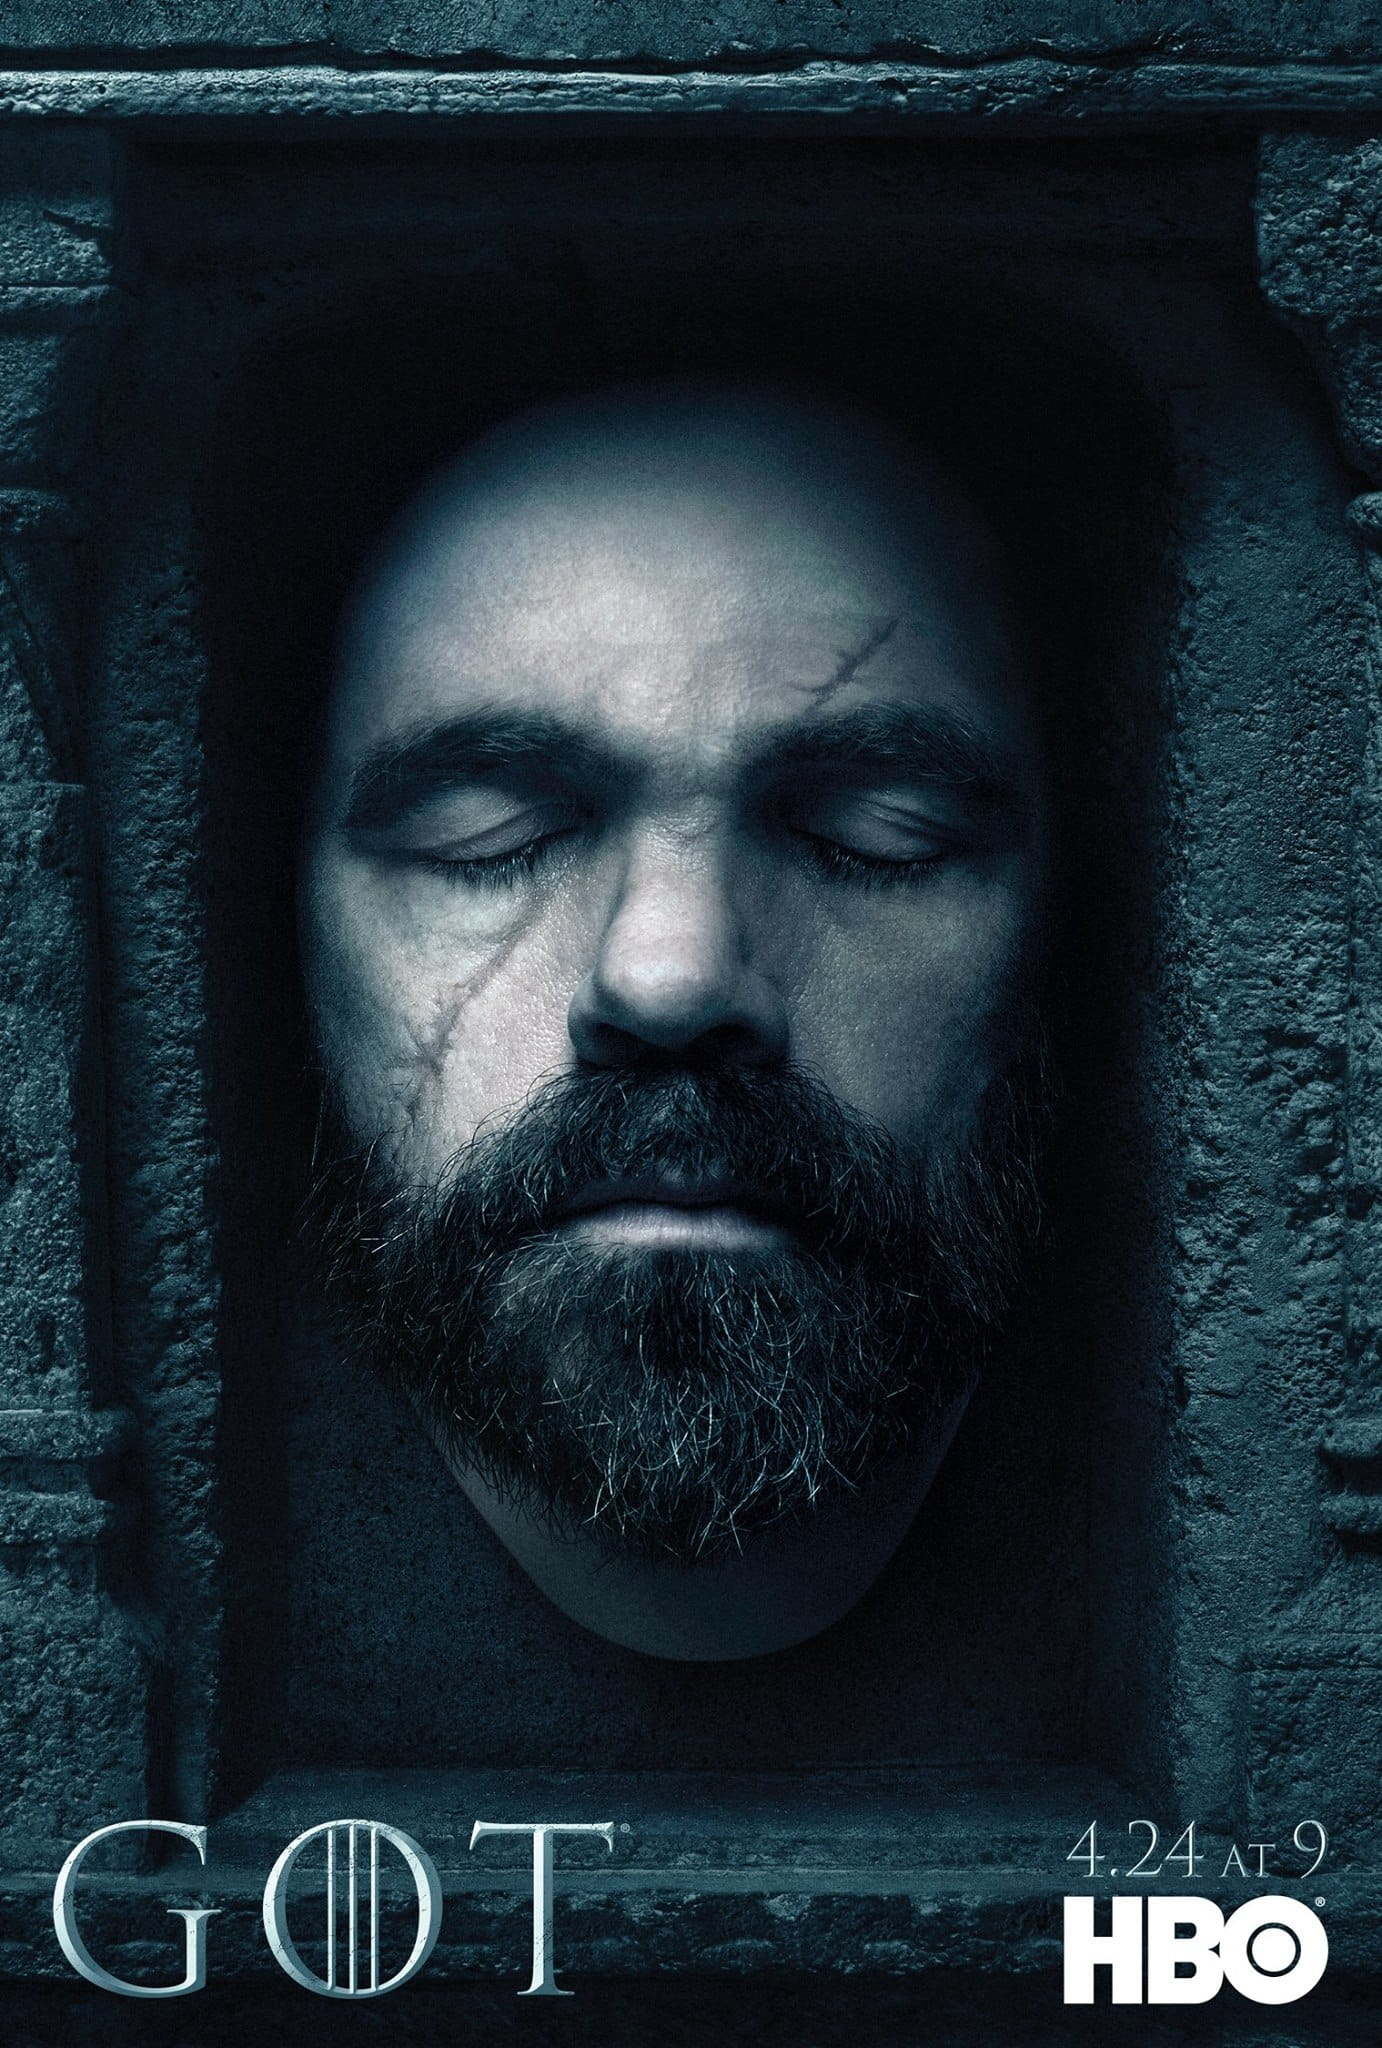 Character Faces For Game of Thrones Cast Released